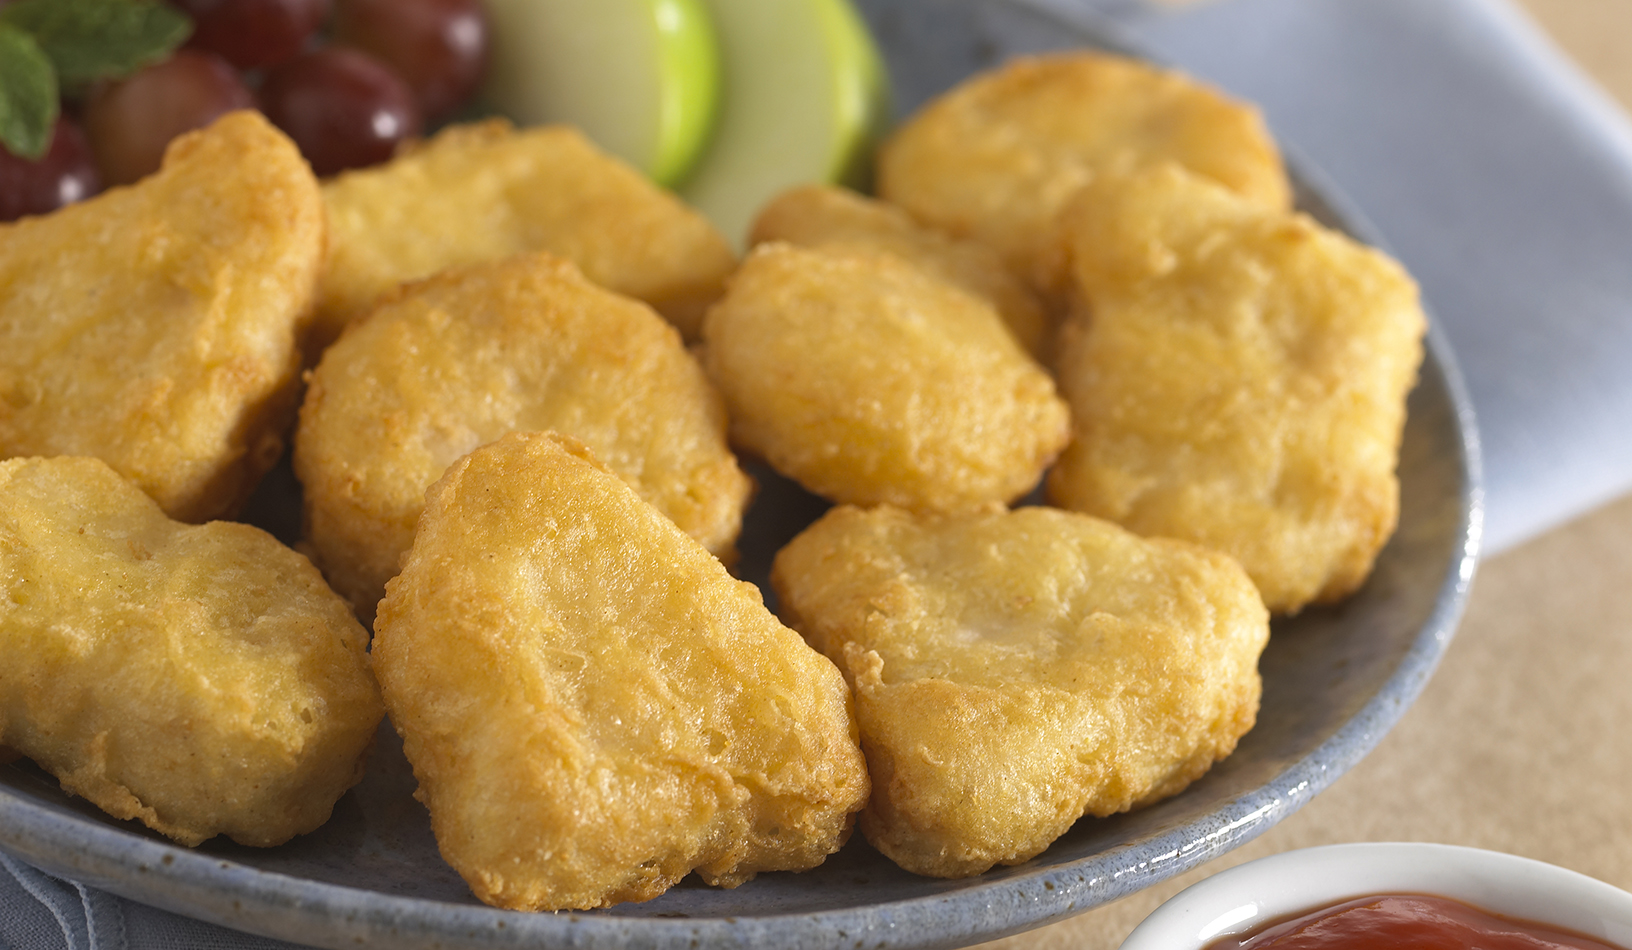 Tempura Battered Chicken Breast Nuggets image